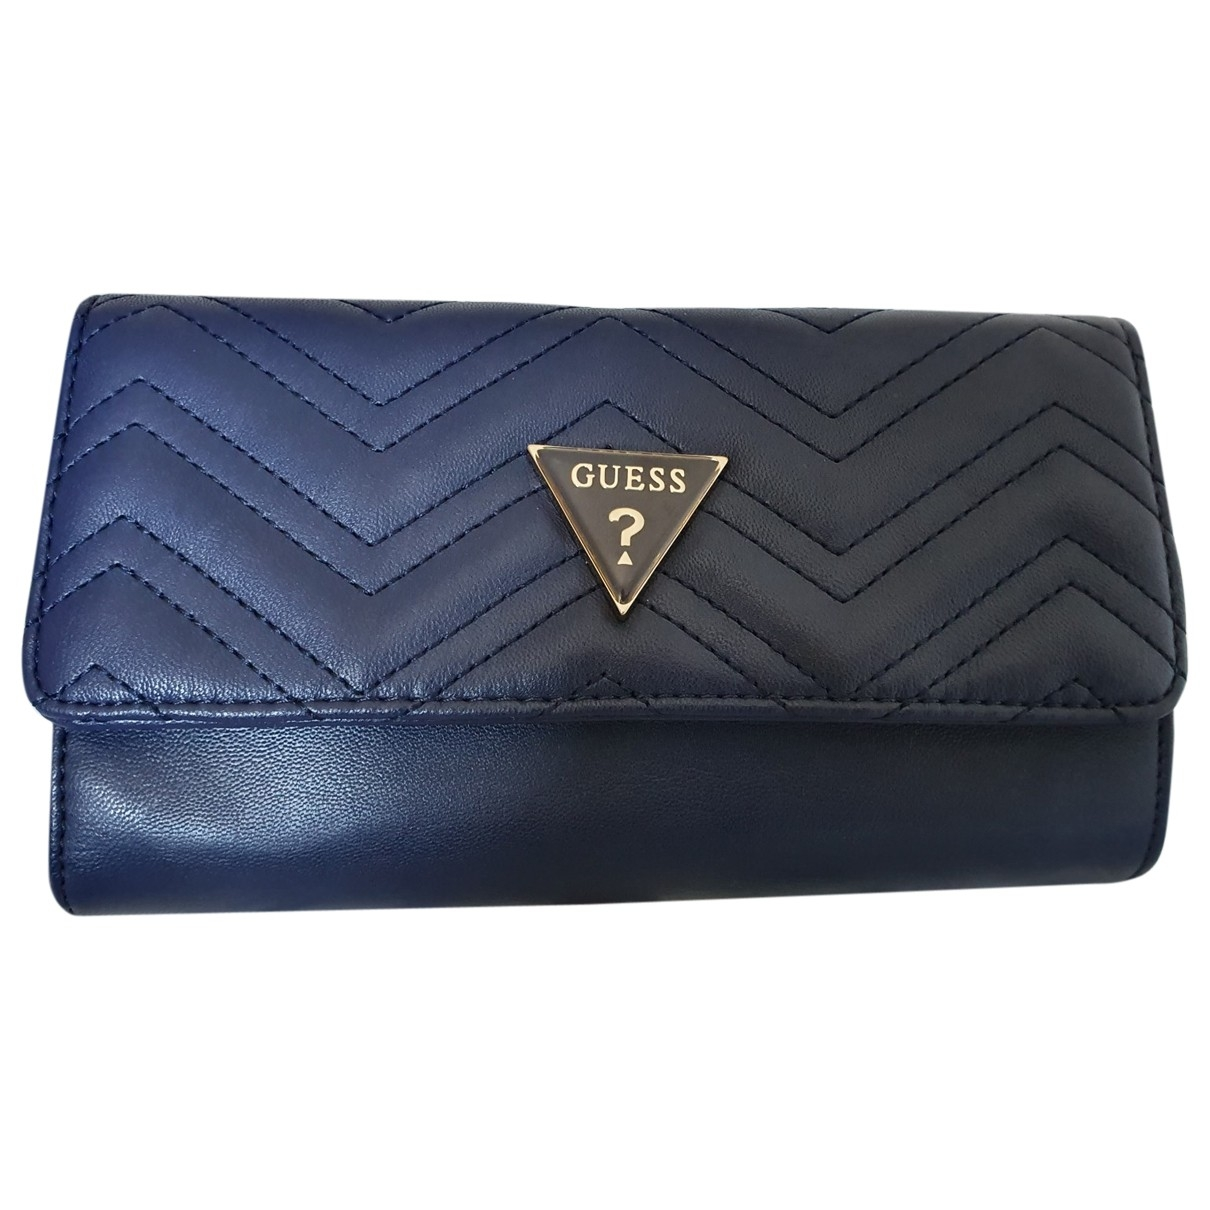 Guess \N Clutch in  Blau Polyester